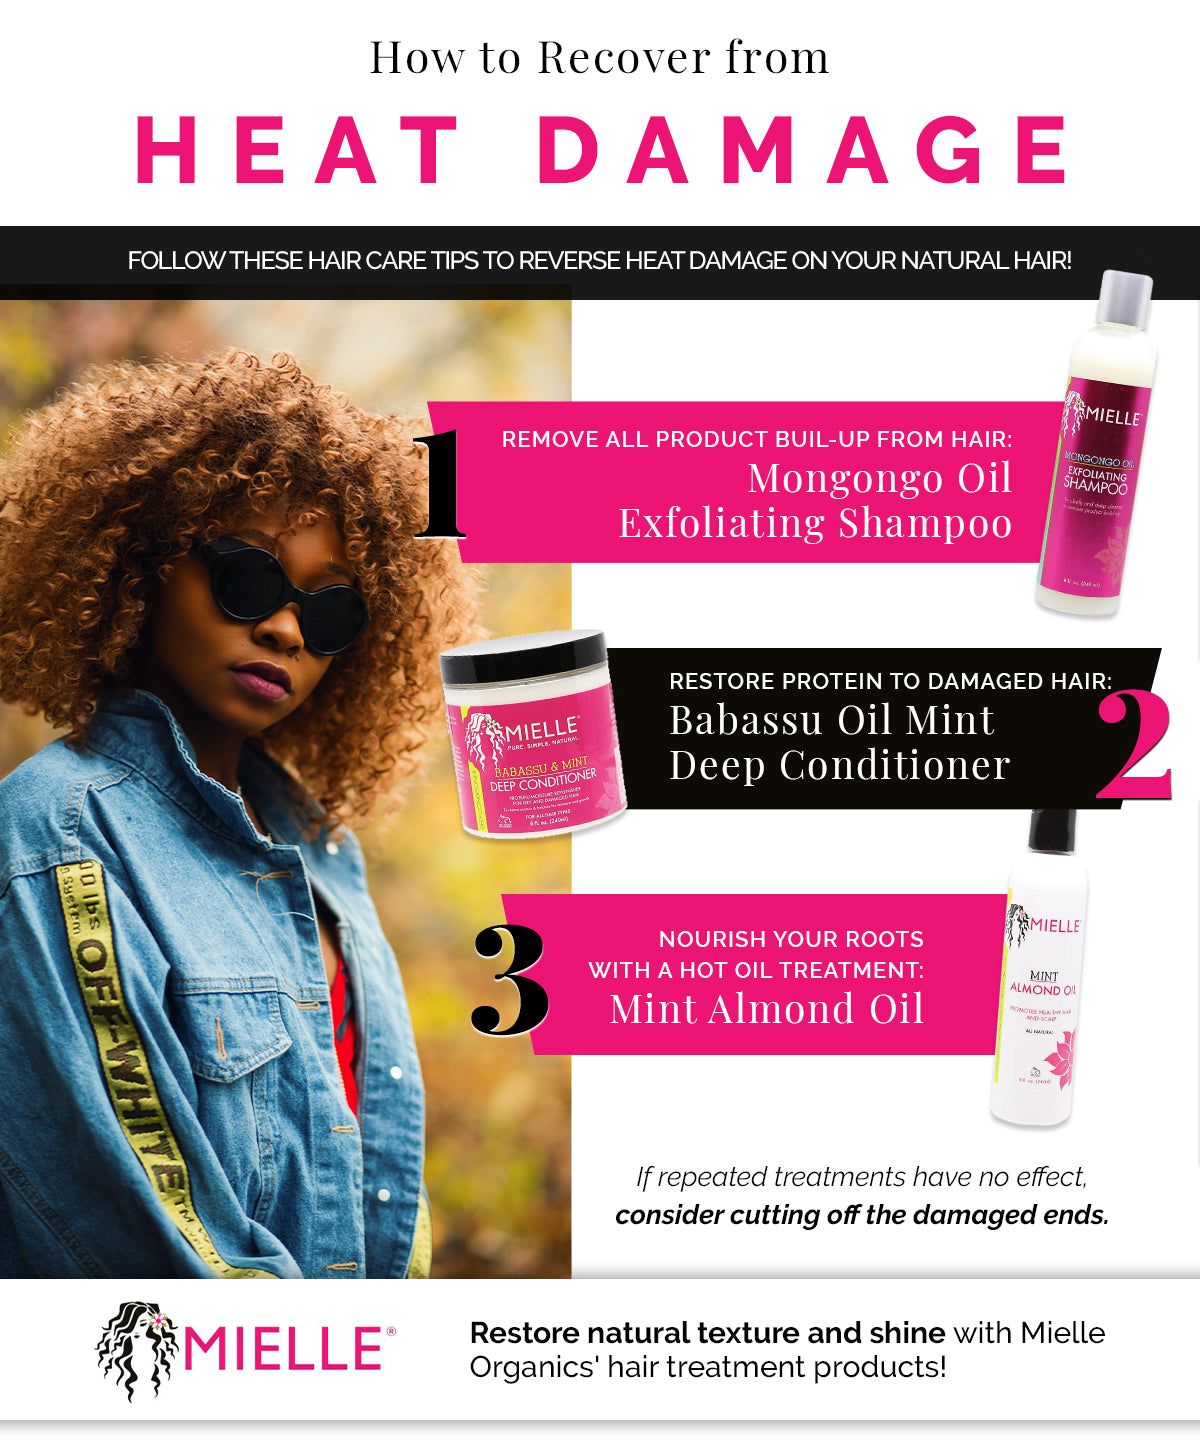 Hair Care Tips How To Recover From Heat Damage Mielle